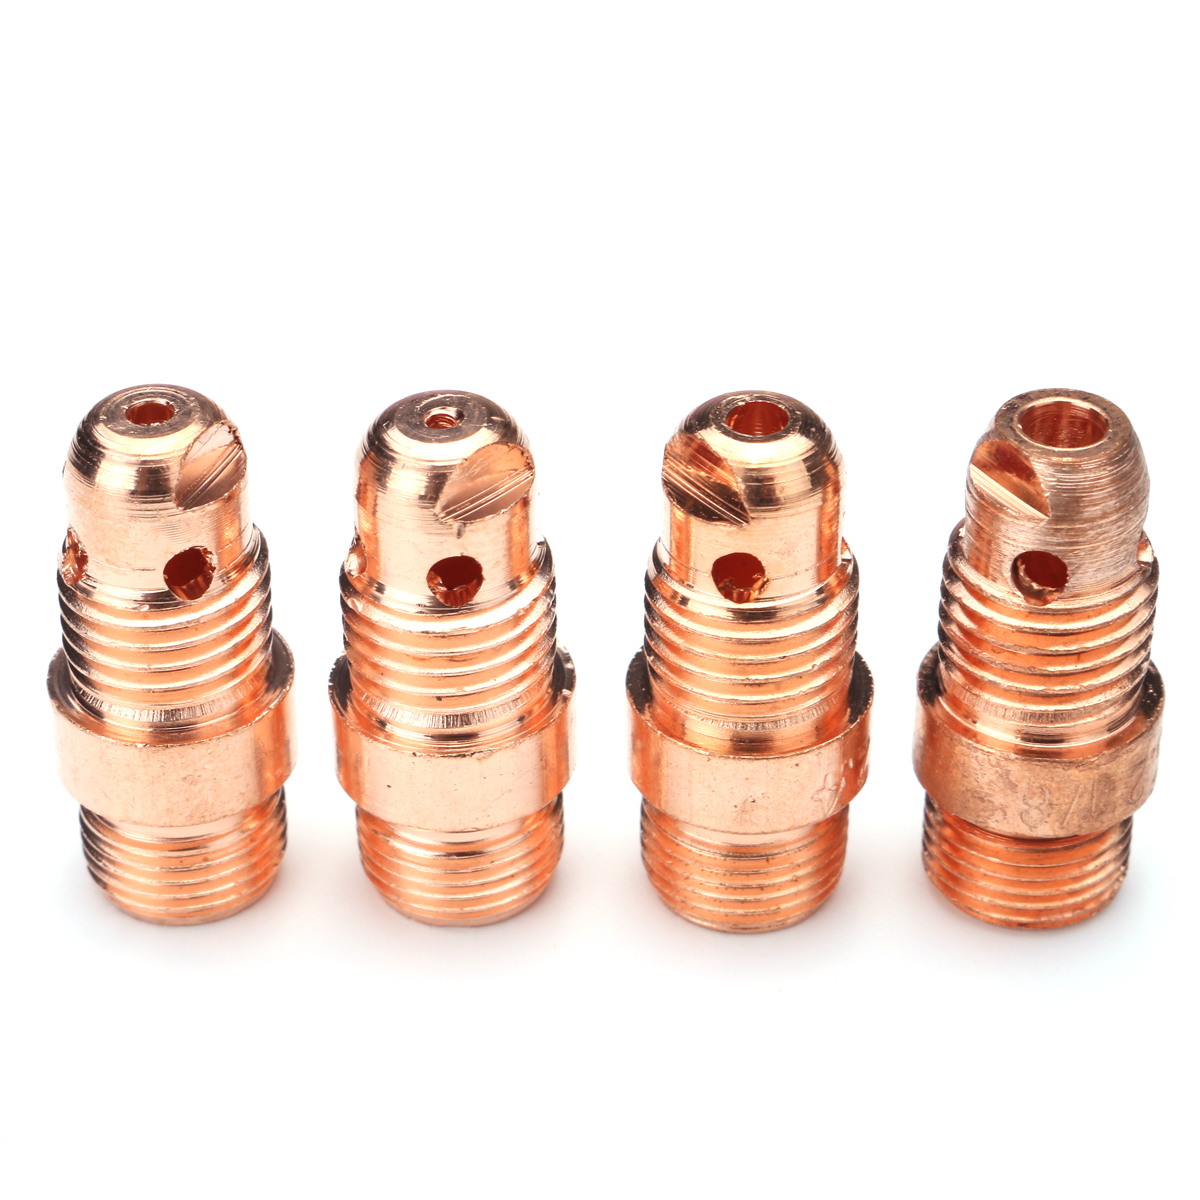 49Pcs TIG Welding Stubby Gas Lens #10 Pyrex Cup Kit for Tig WP-17/18/26 Torch